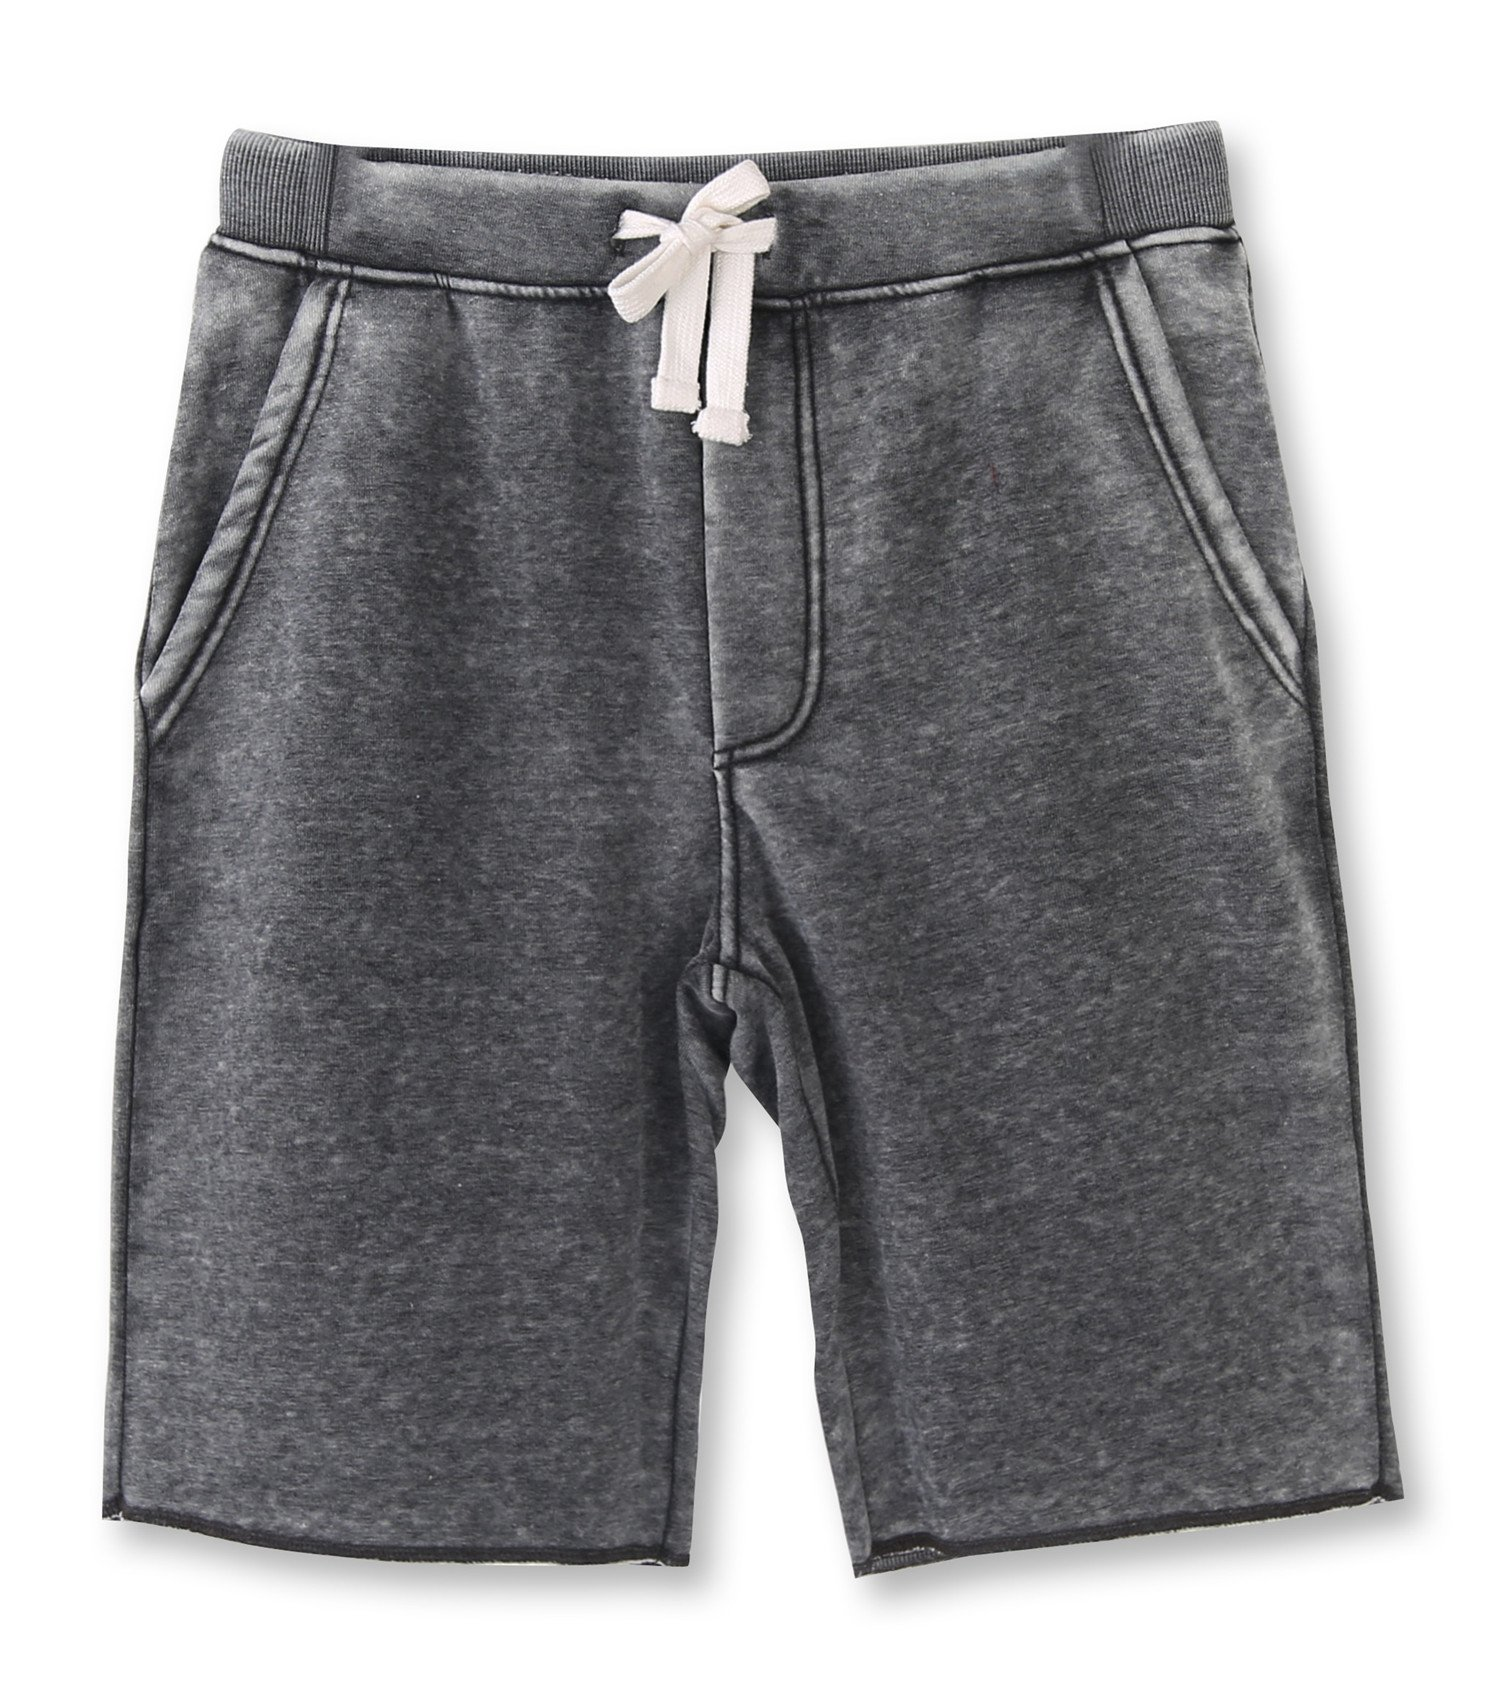 HETHCODE Men's Casual Classic Fit Cotton Elastic Fleece Jogger Gym Shorts Burnout Gray XL